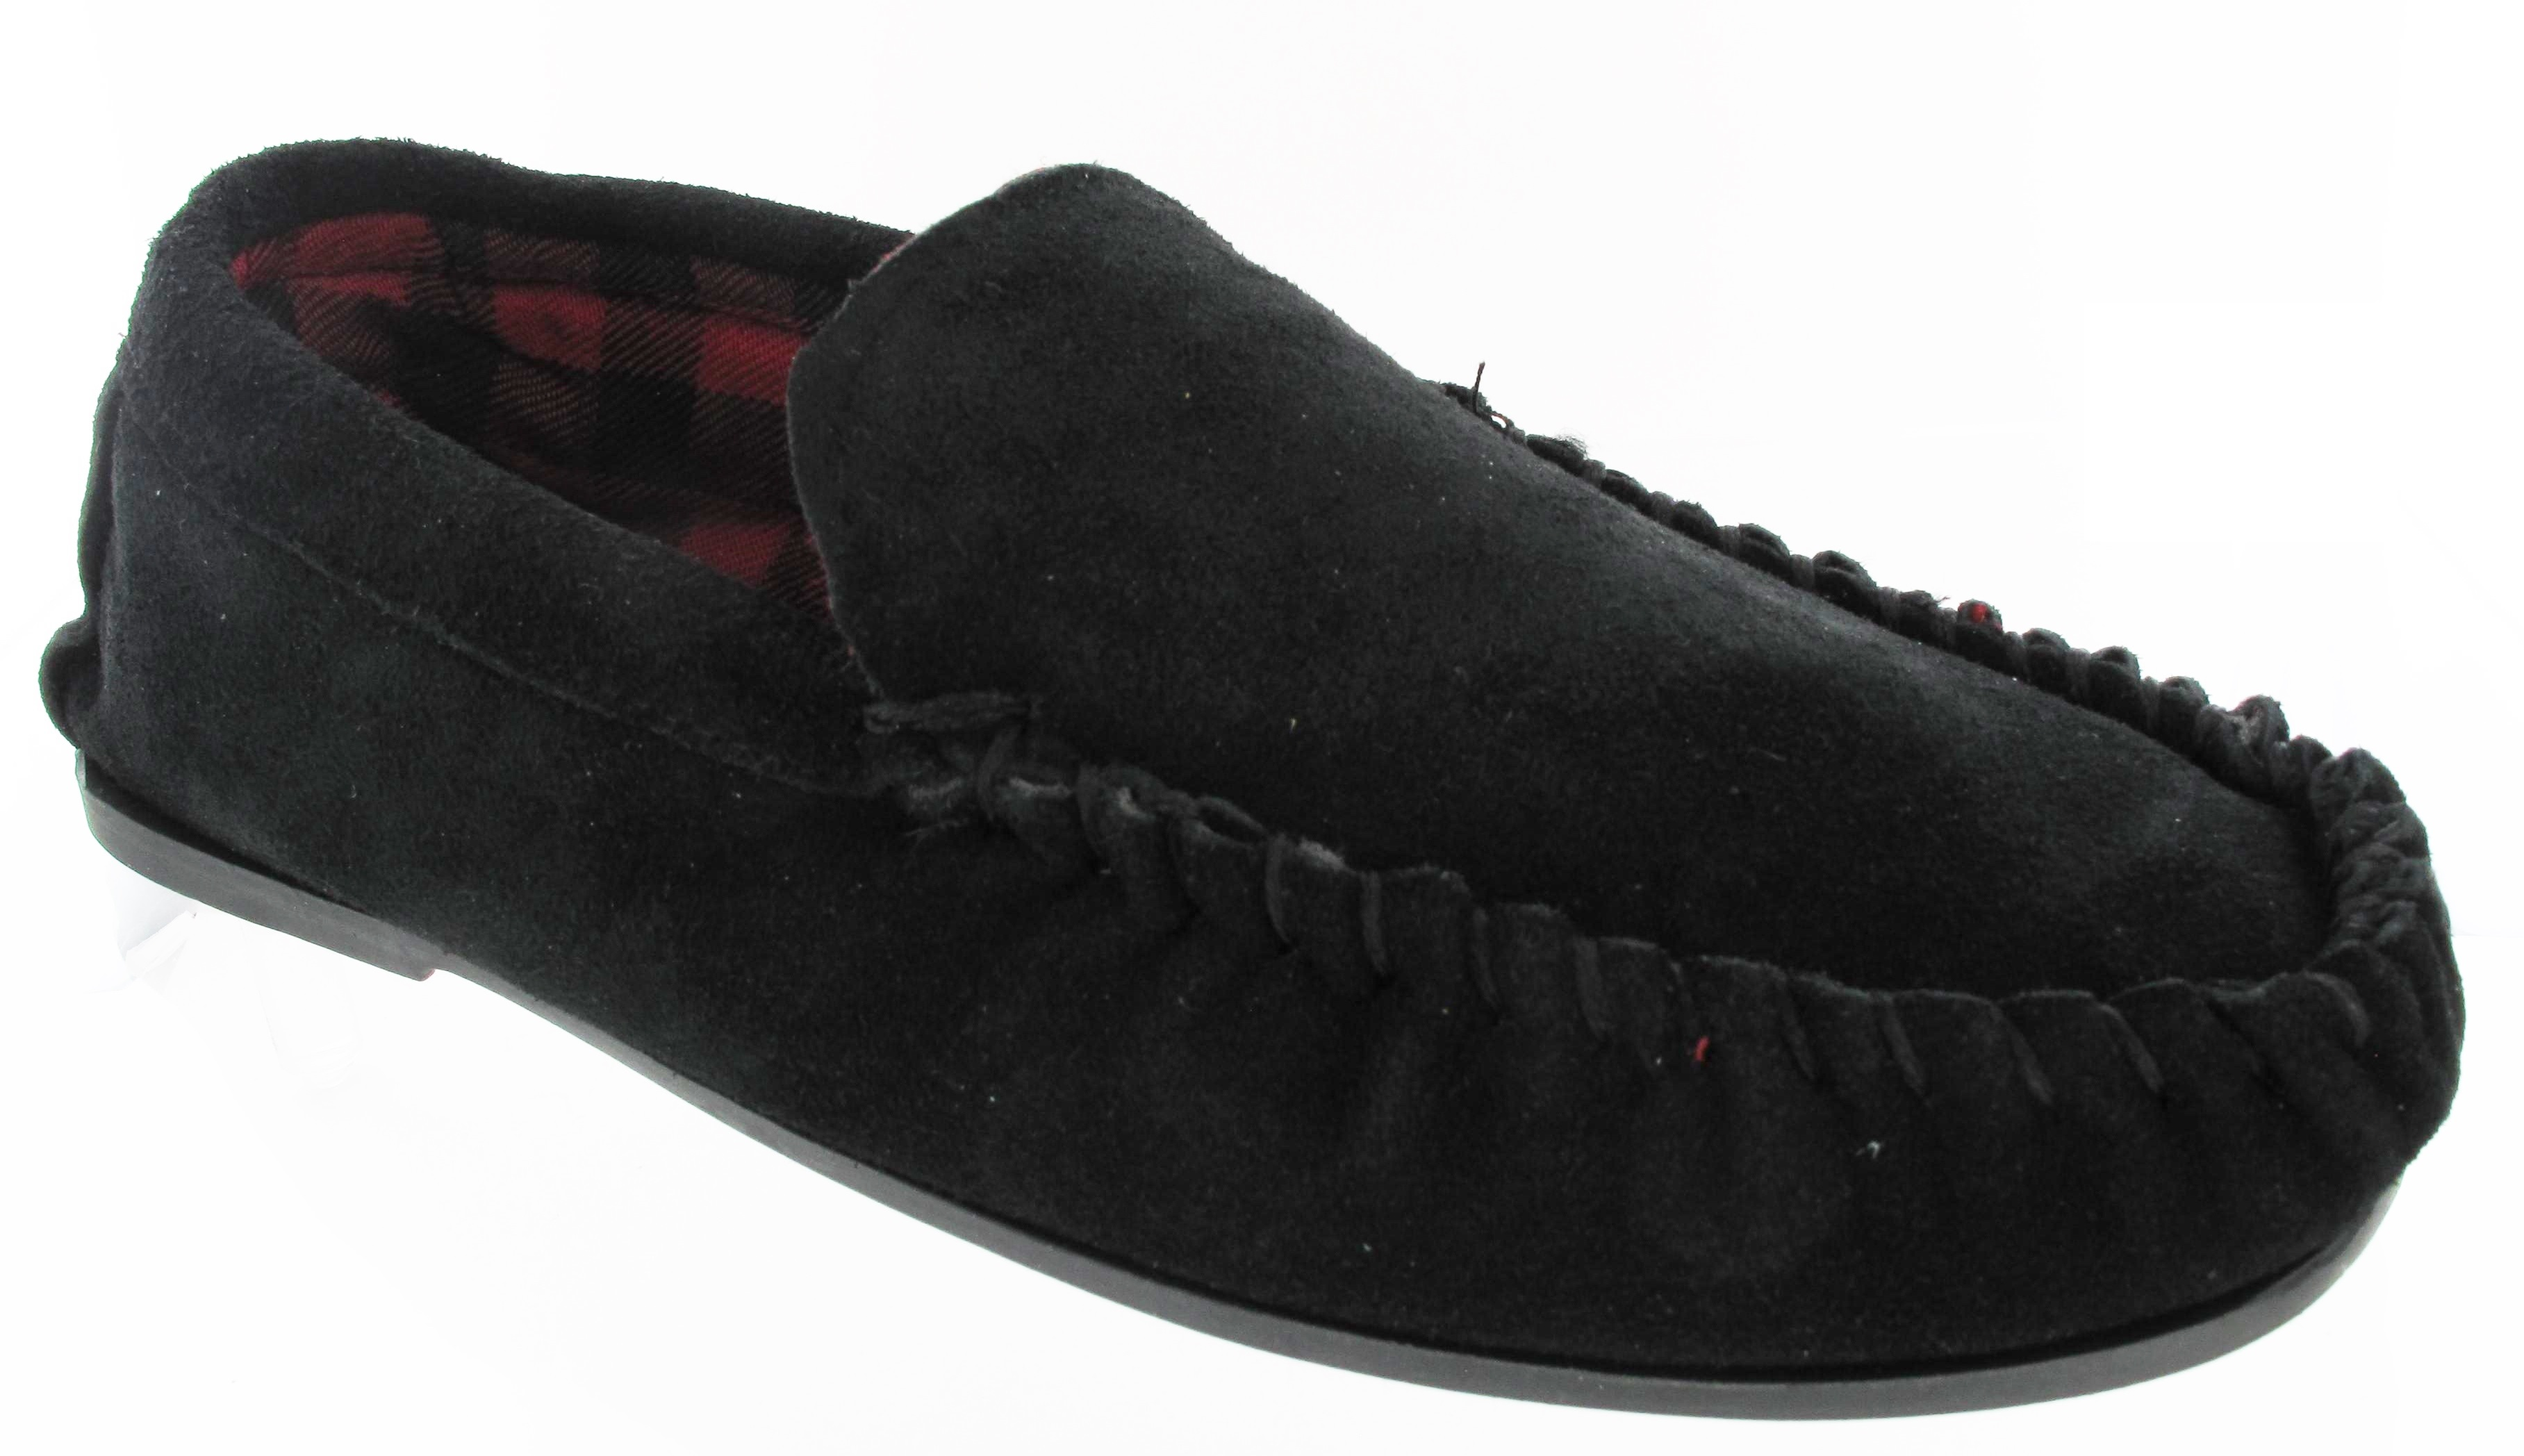 MENS-GENTS-REAL-LEATHER-SUEDE-MOCCASIN-WINTER-FLAT-BLACK-SLIPPERS-SIZE-UK-6-12 thumbnail 4